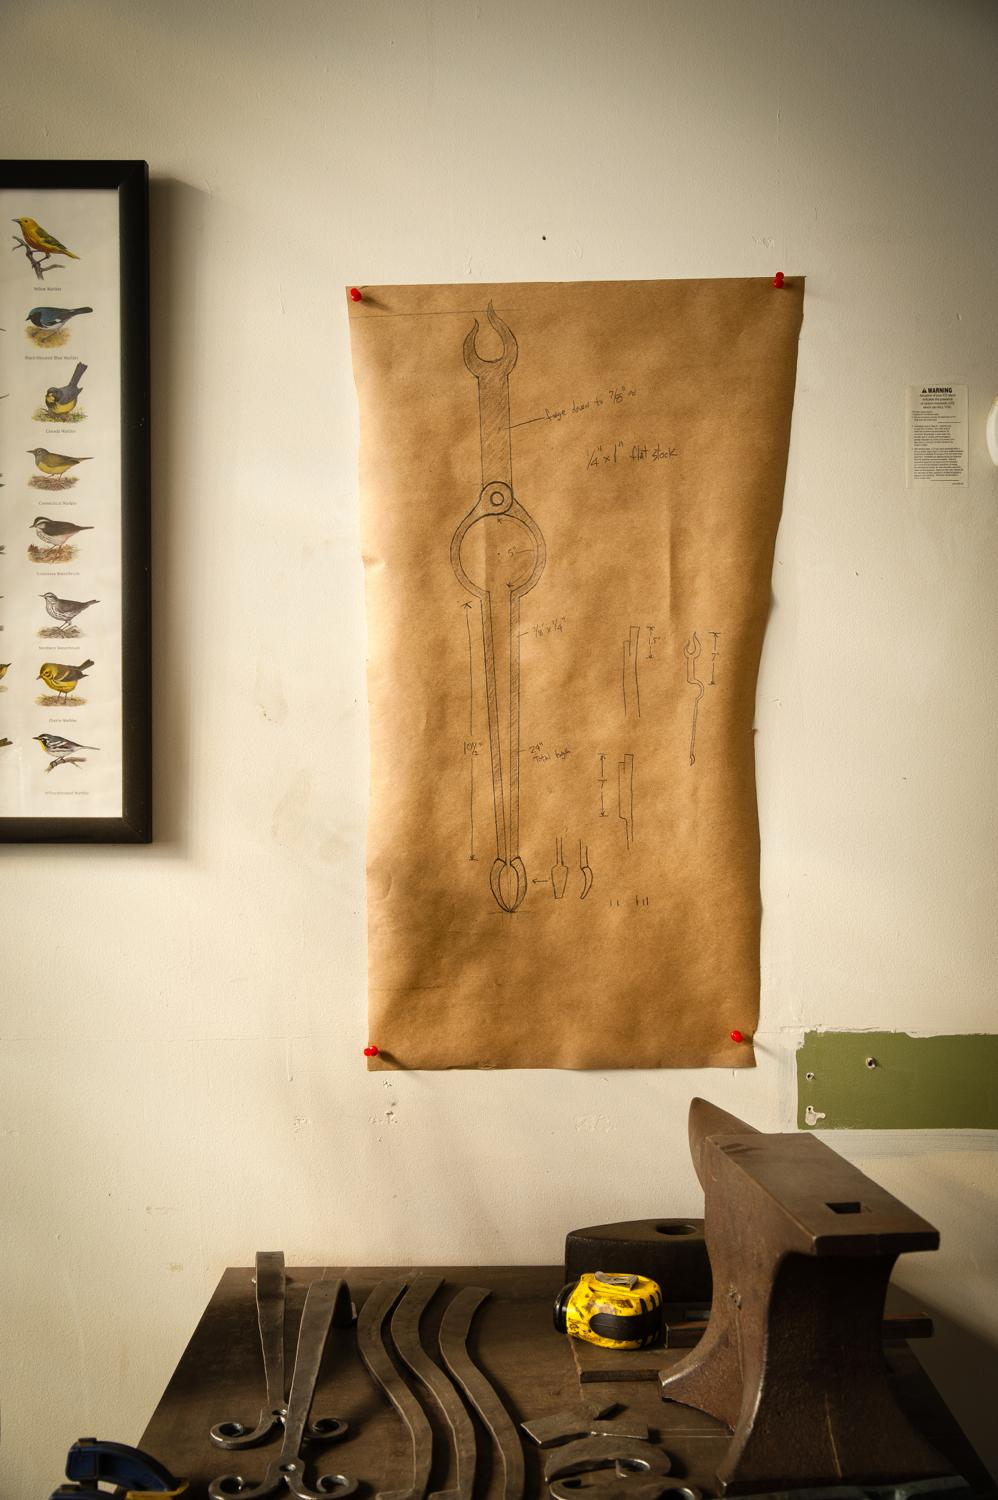 A sketch of Gilsdorf's current project, a commission for fireplace tongs, hangs on the wall. / Image: Melissa Doss Sliney